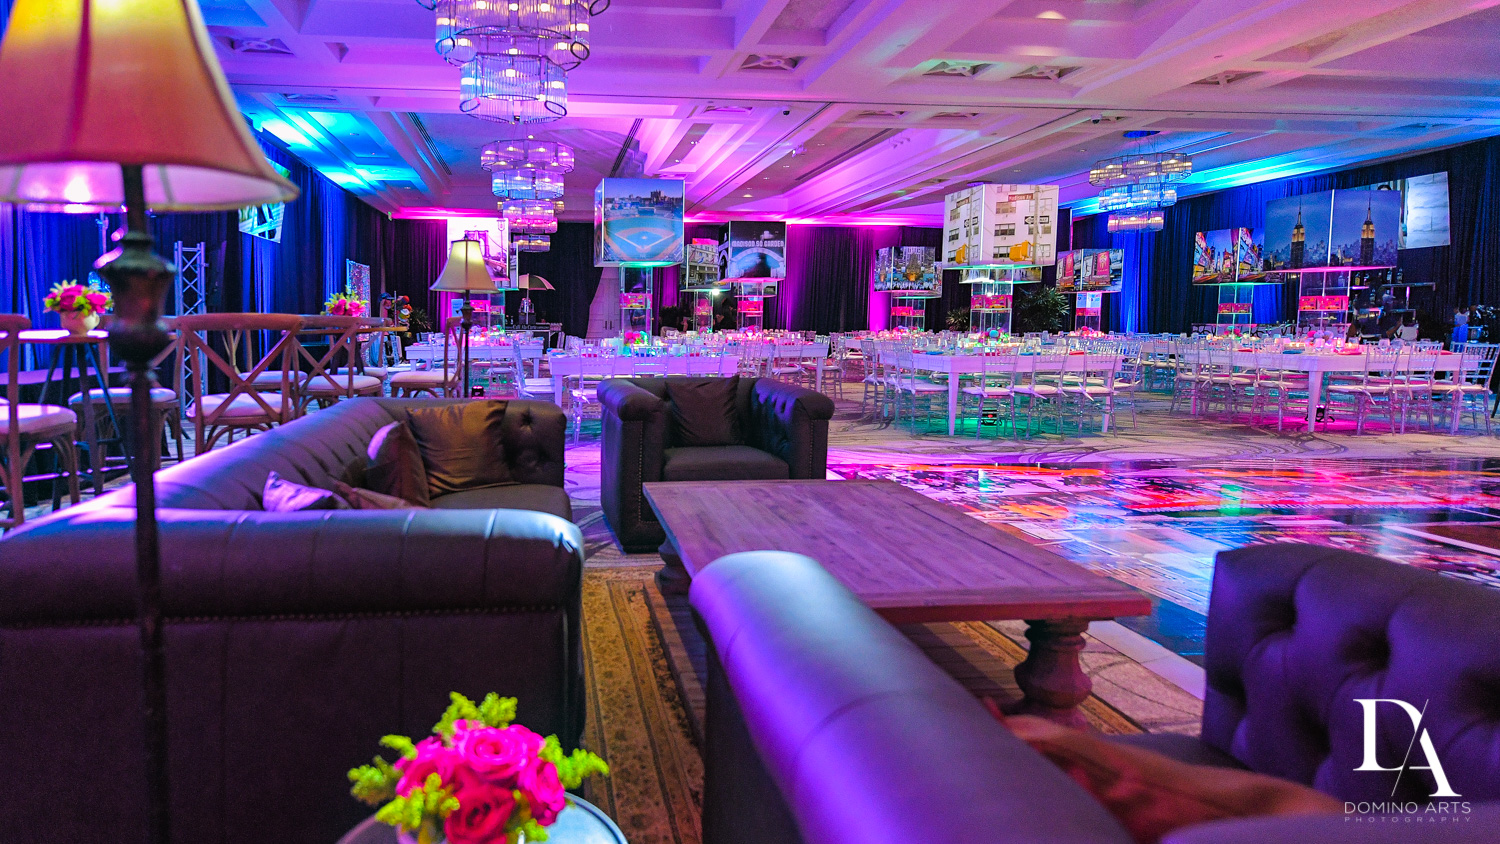 purple decor at New York Theme Bat Mitzvah at Woodfield Country Club, Boca Raton by Domino Arts Photography